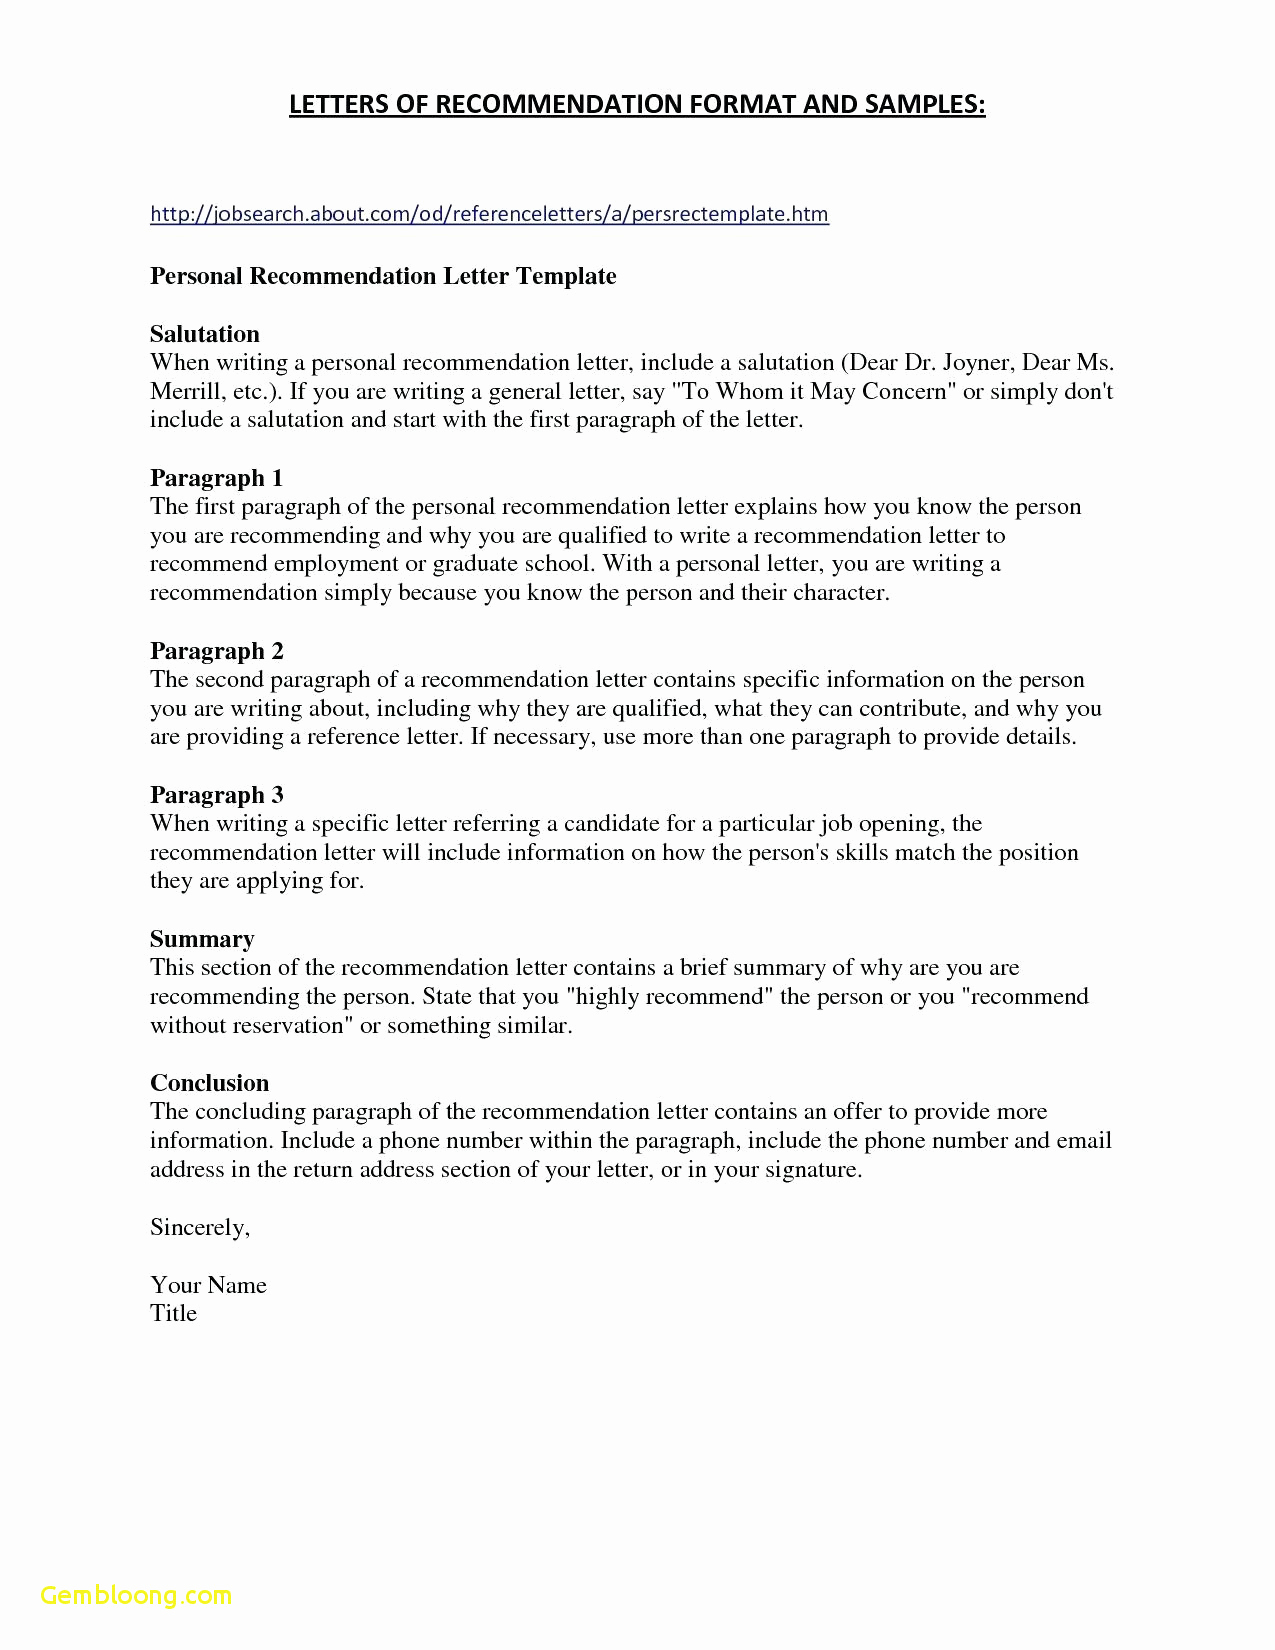 Writing Your Own Letter Of Recommendation Template - Personal Re Mendation Letter for Employment Lovely References for